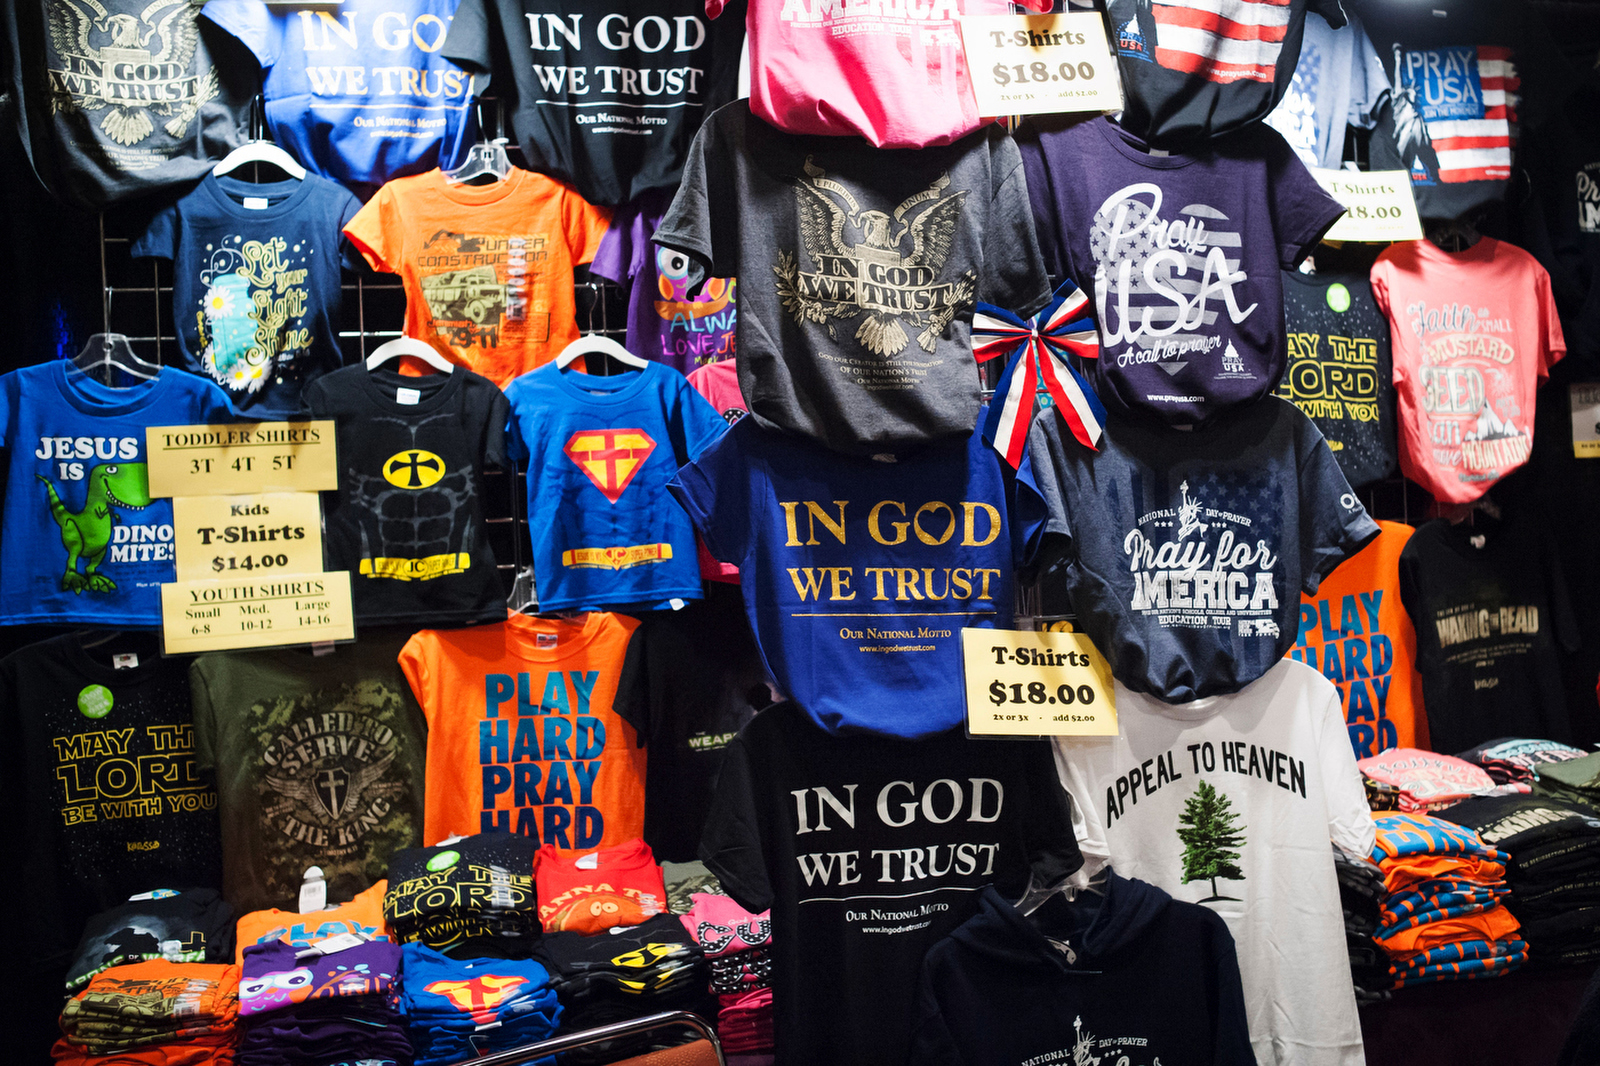 Religious and political clothing sits for sale at the Freedom 2015 National Religious Liberties Conference in Des Moines, Iowa November 6, 2015.